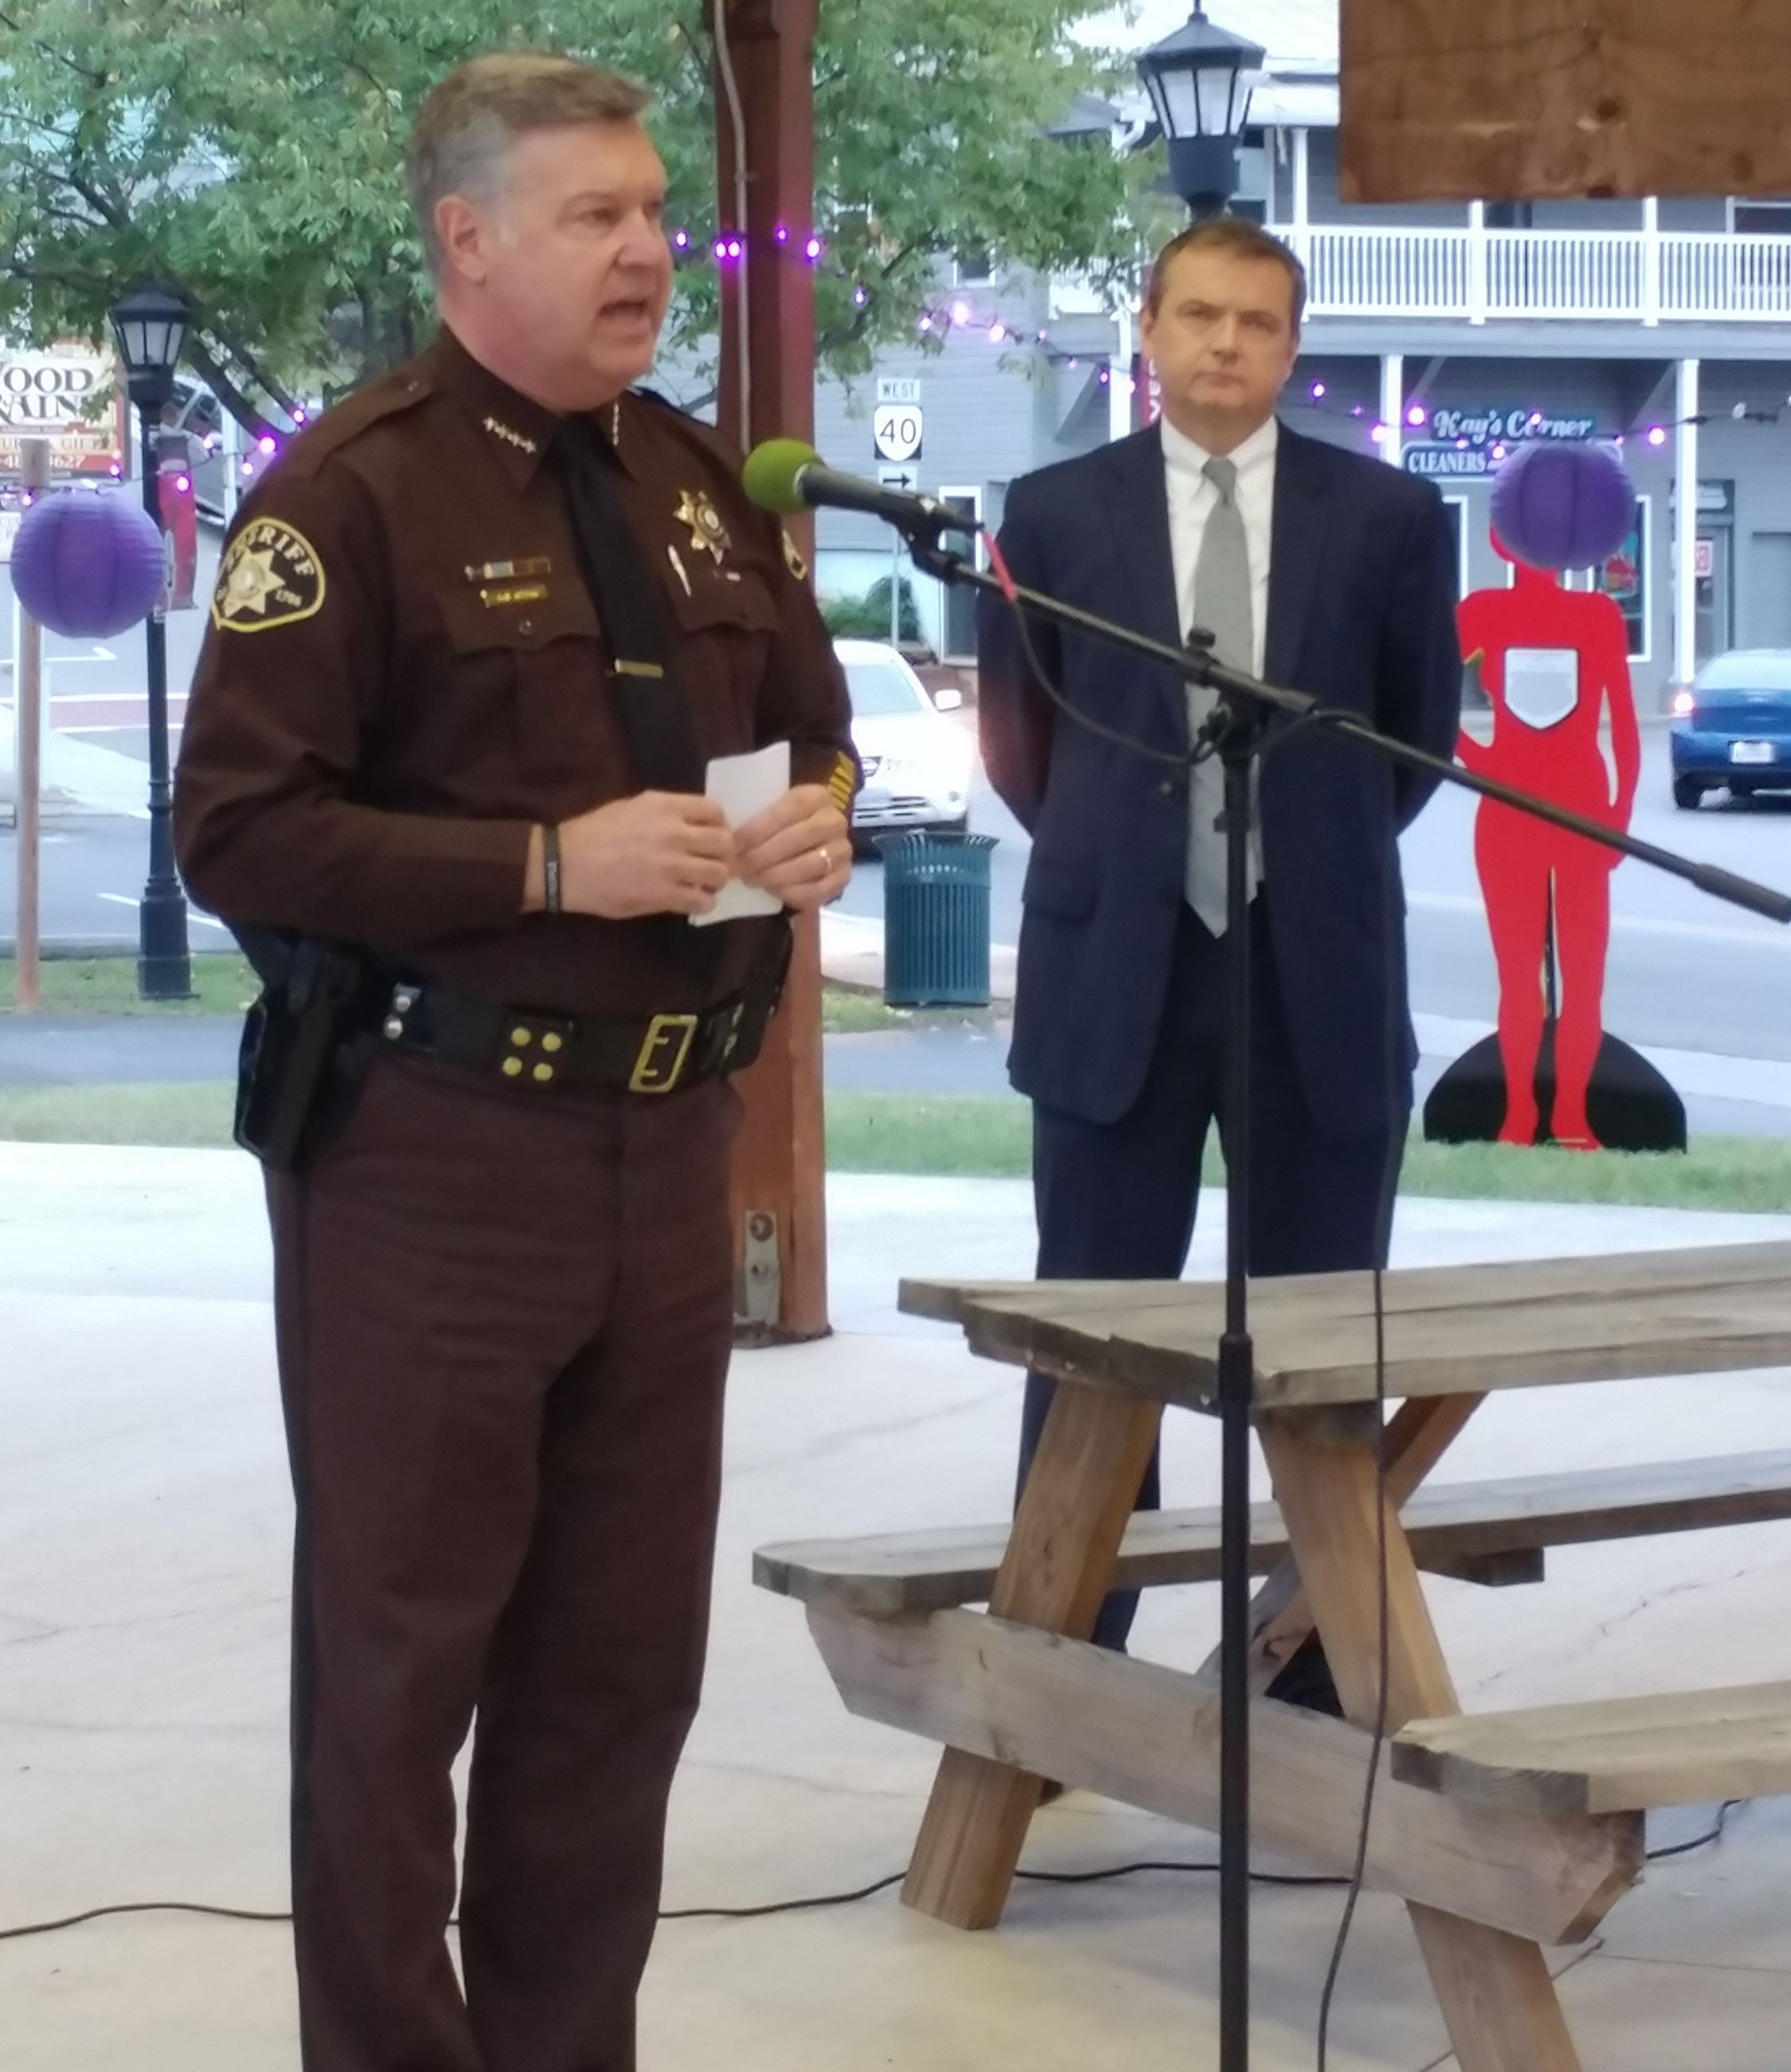 Police Officer Speaking into Microphone Next to Man in Business Suit